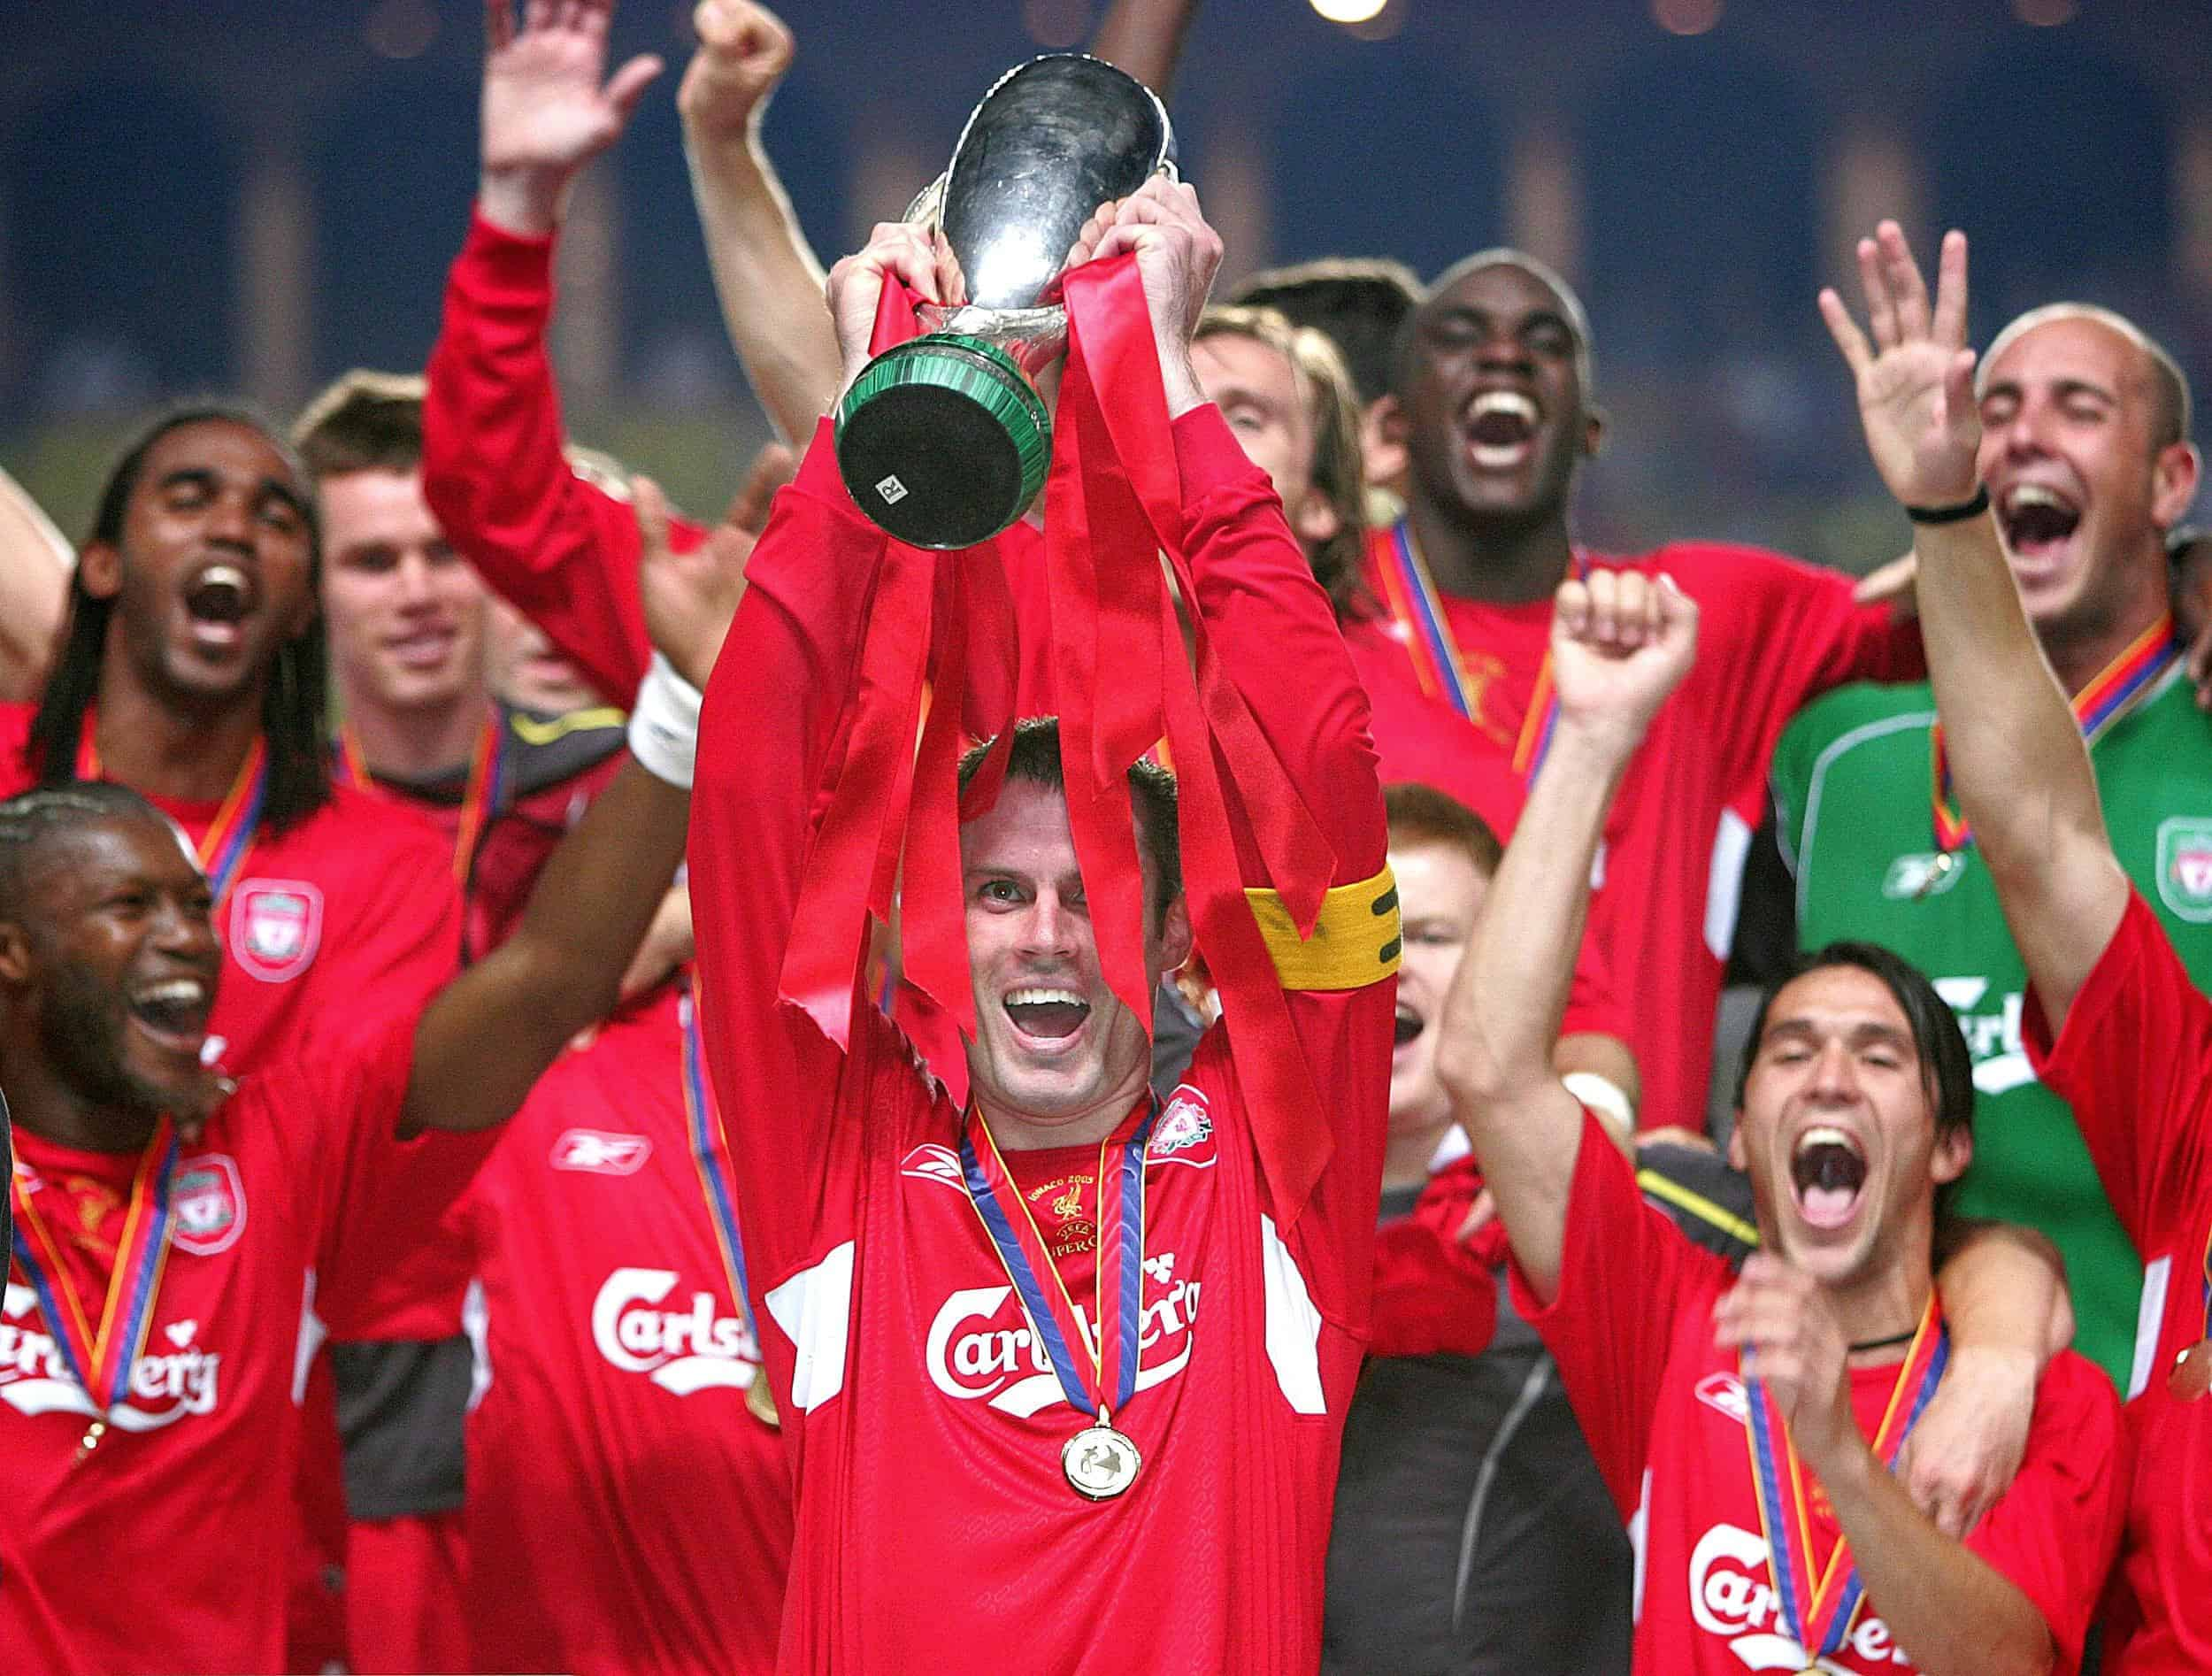 Liverpool captain Jamie Carragher (C) lifts the trophy after winning the UEFA Super Cup against Monaco at the Louis II Stadium in Monaco, Friday August 26, 2005. PRESS ASSOCIATION Photo: Martin Rickett/PA.